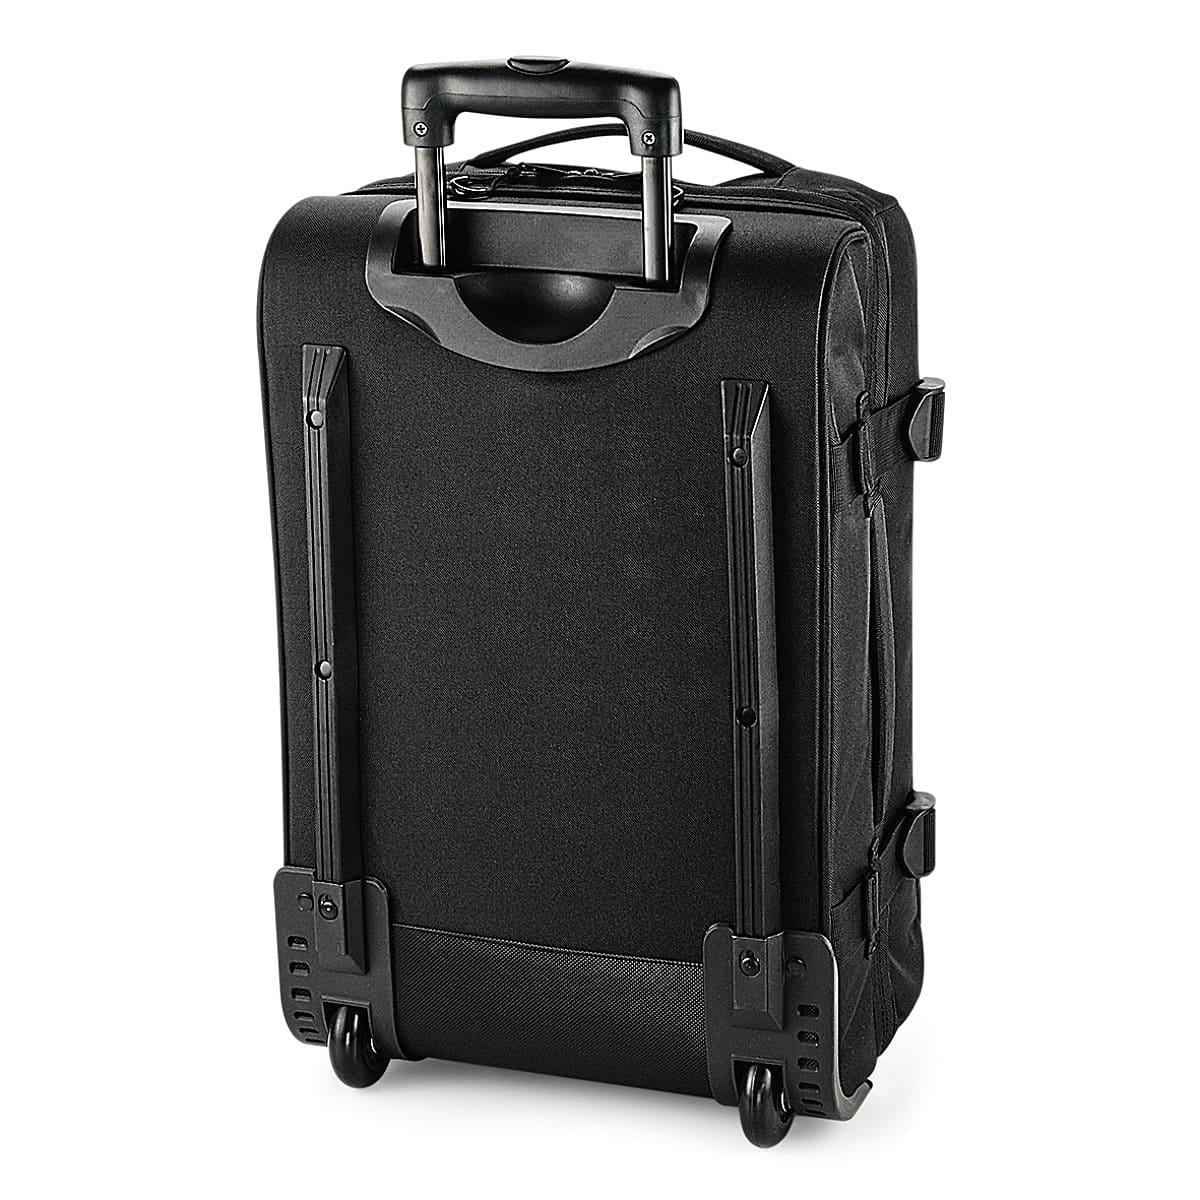 Bagbase Bagbse Escape Carry On Wheelie in Black (Product Code: BG481)